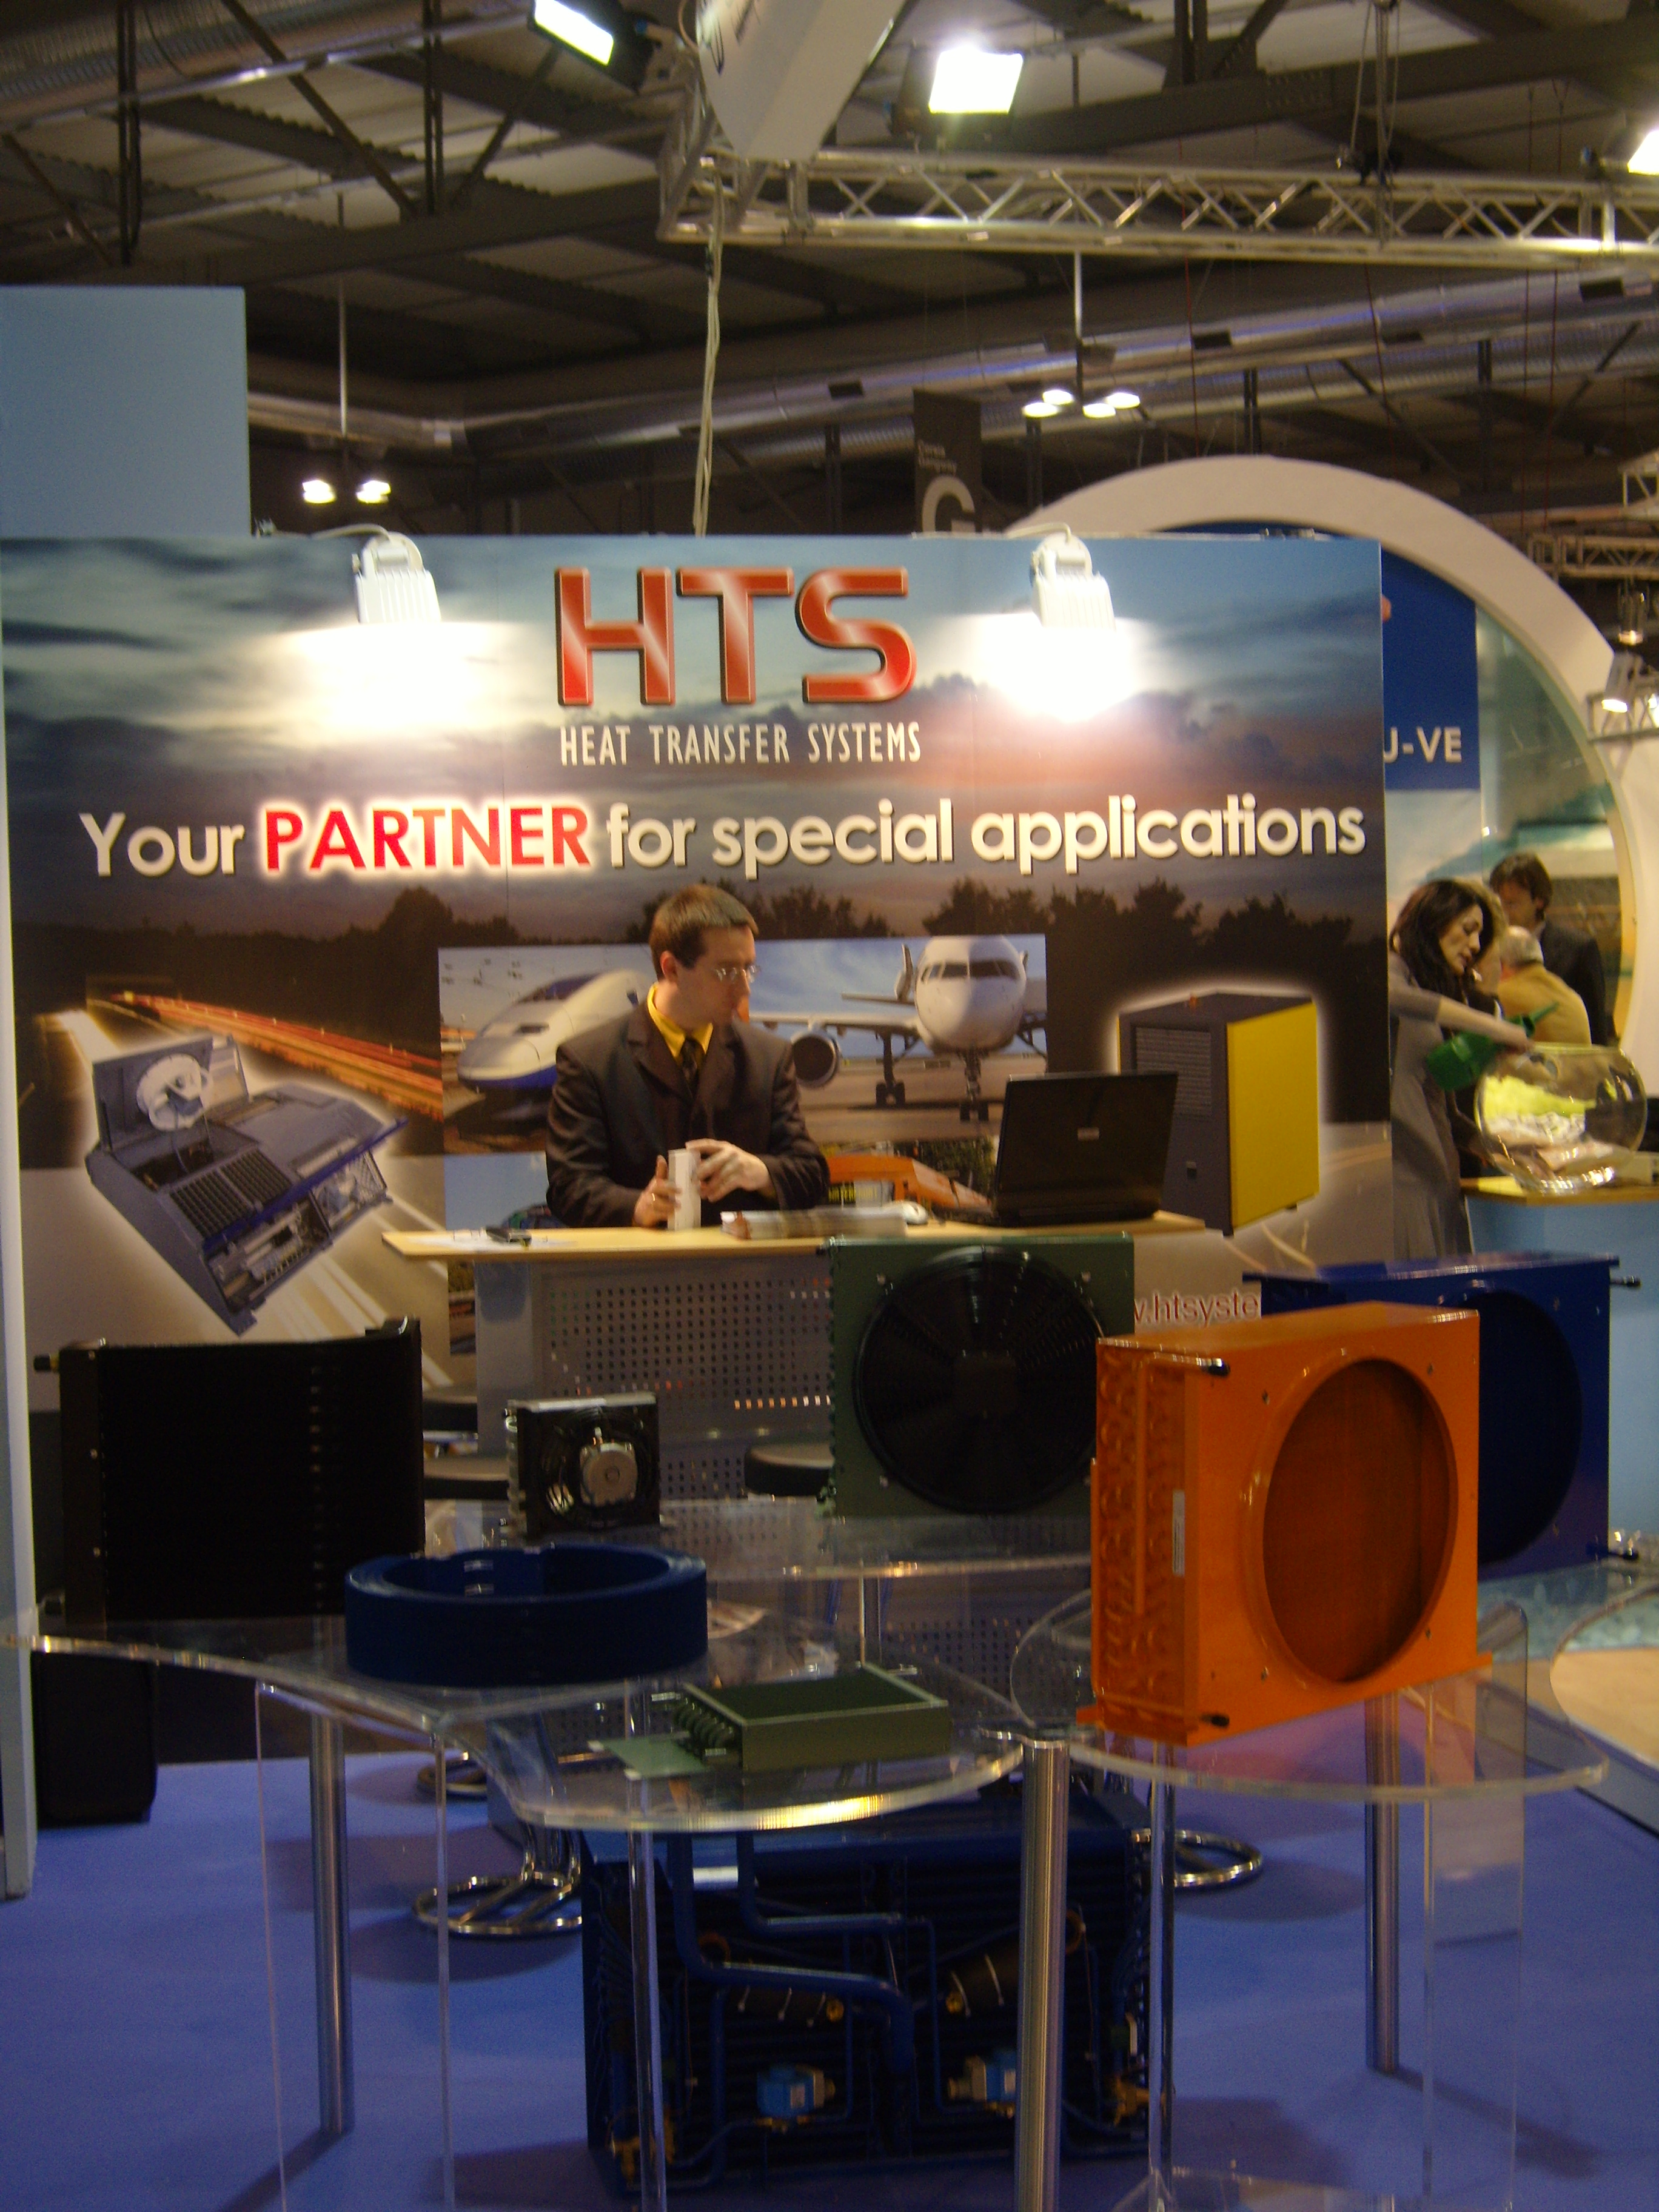 HTS - Heat Transfer Systems